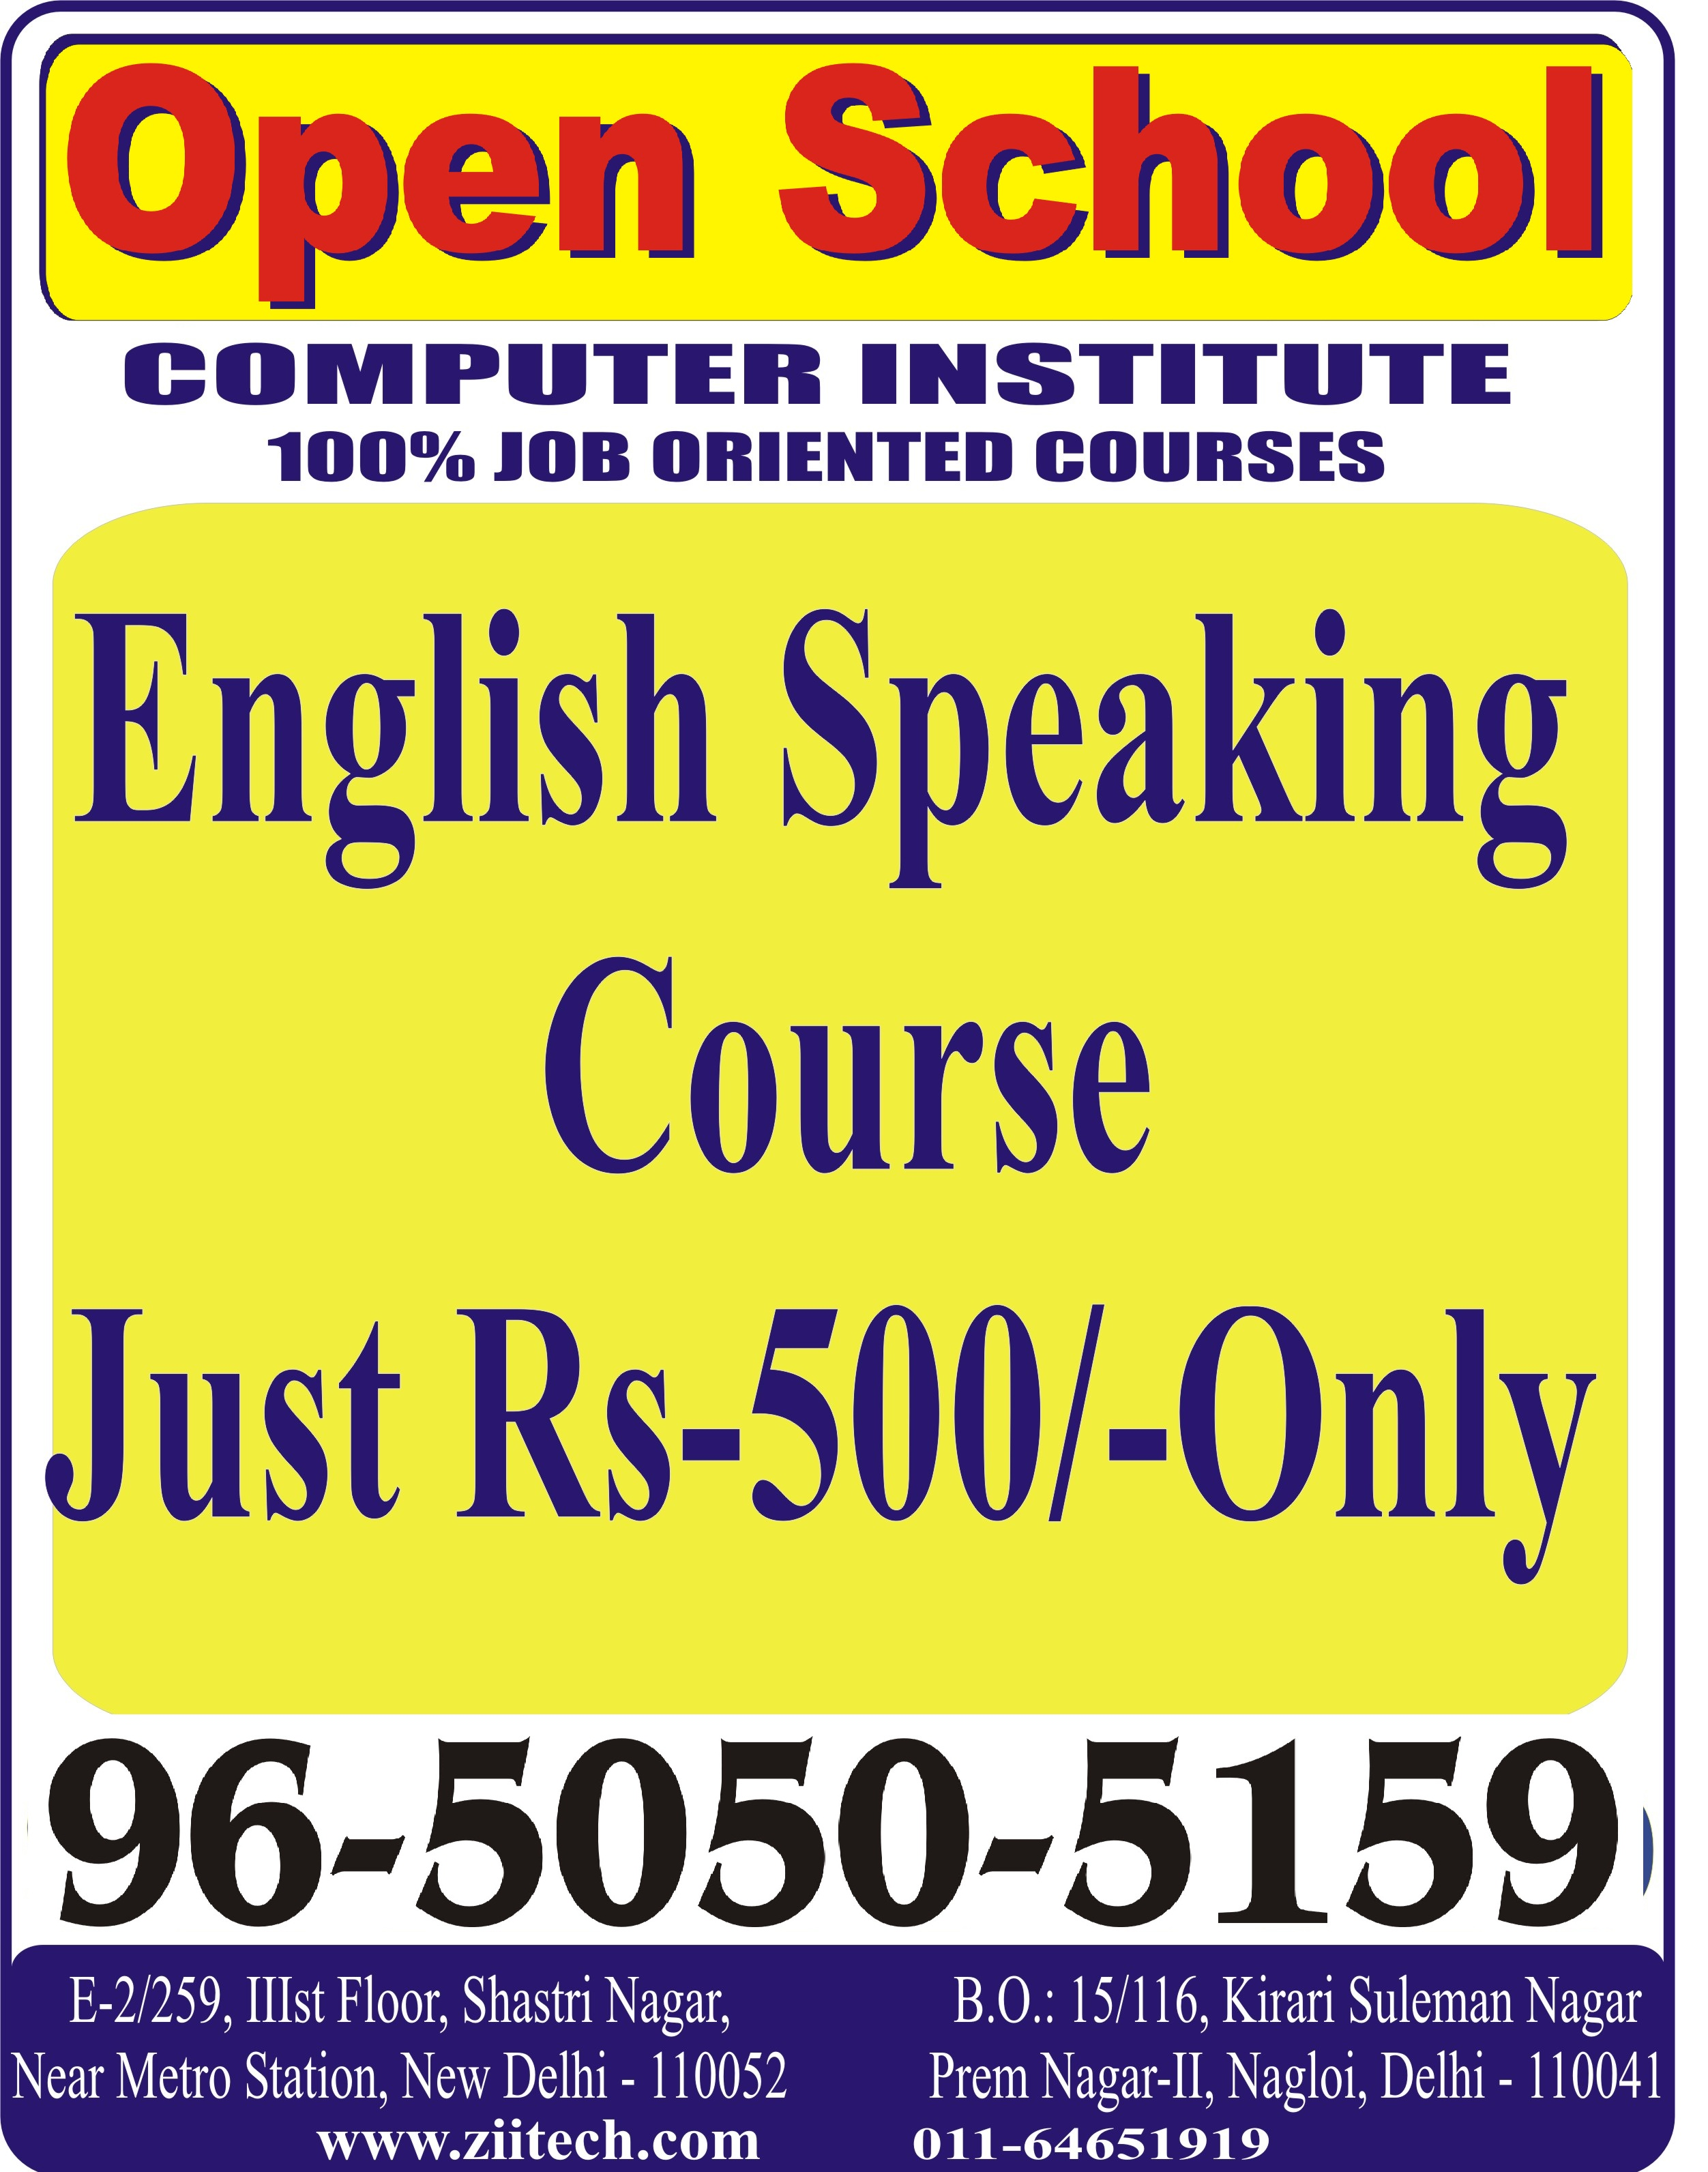 English speaking course just rs 500 only english speaking course in delhiEducation and LearningCoaching ClassesNorth DelhiKashmere Gate